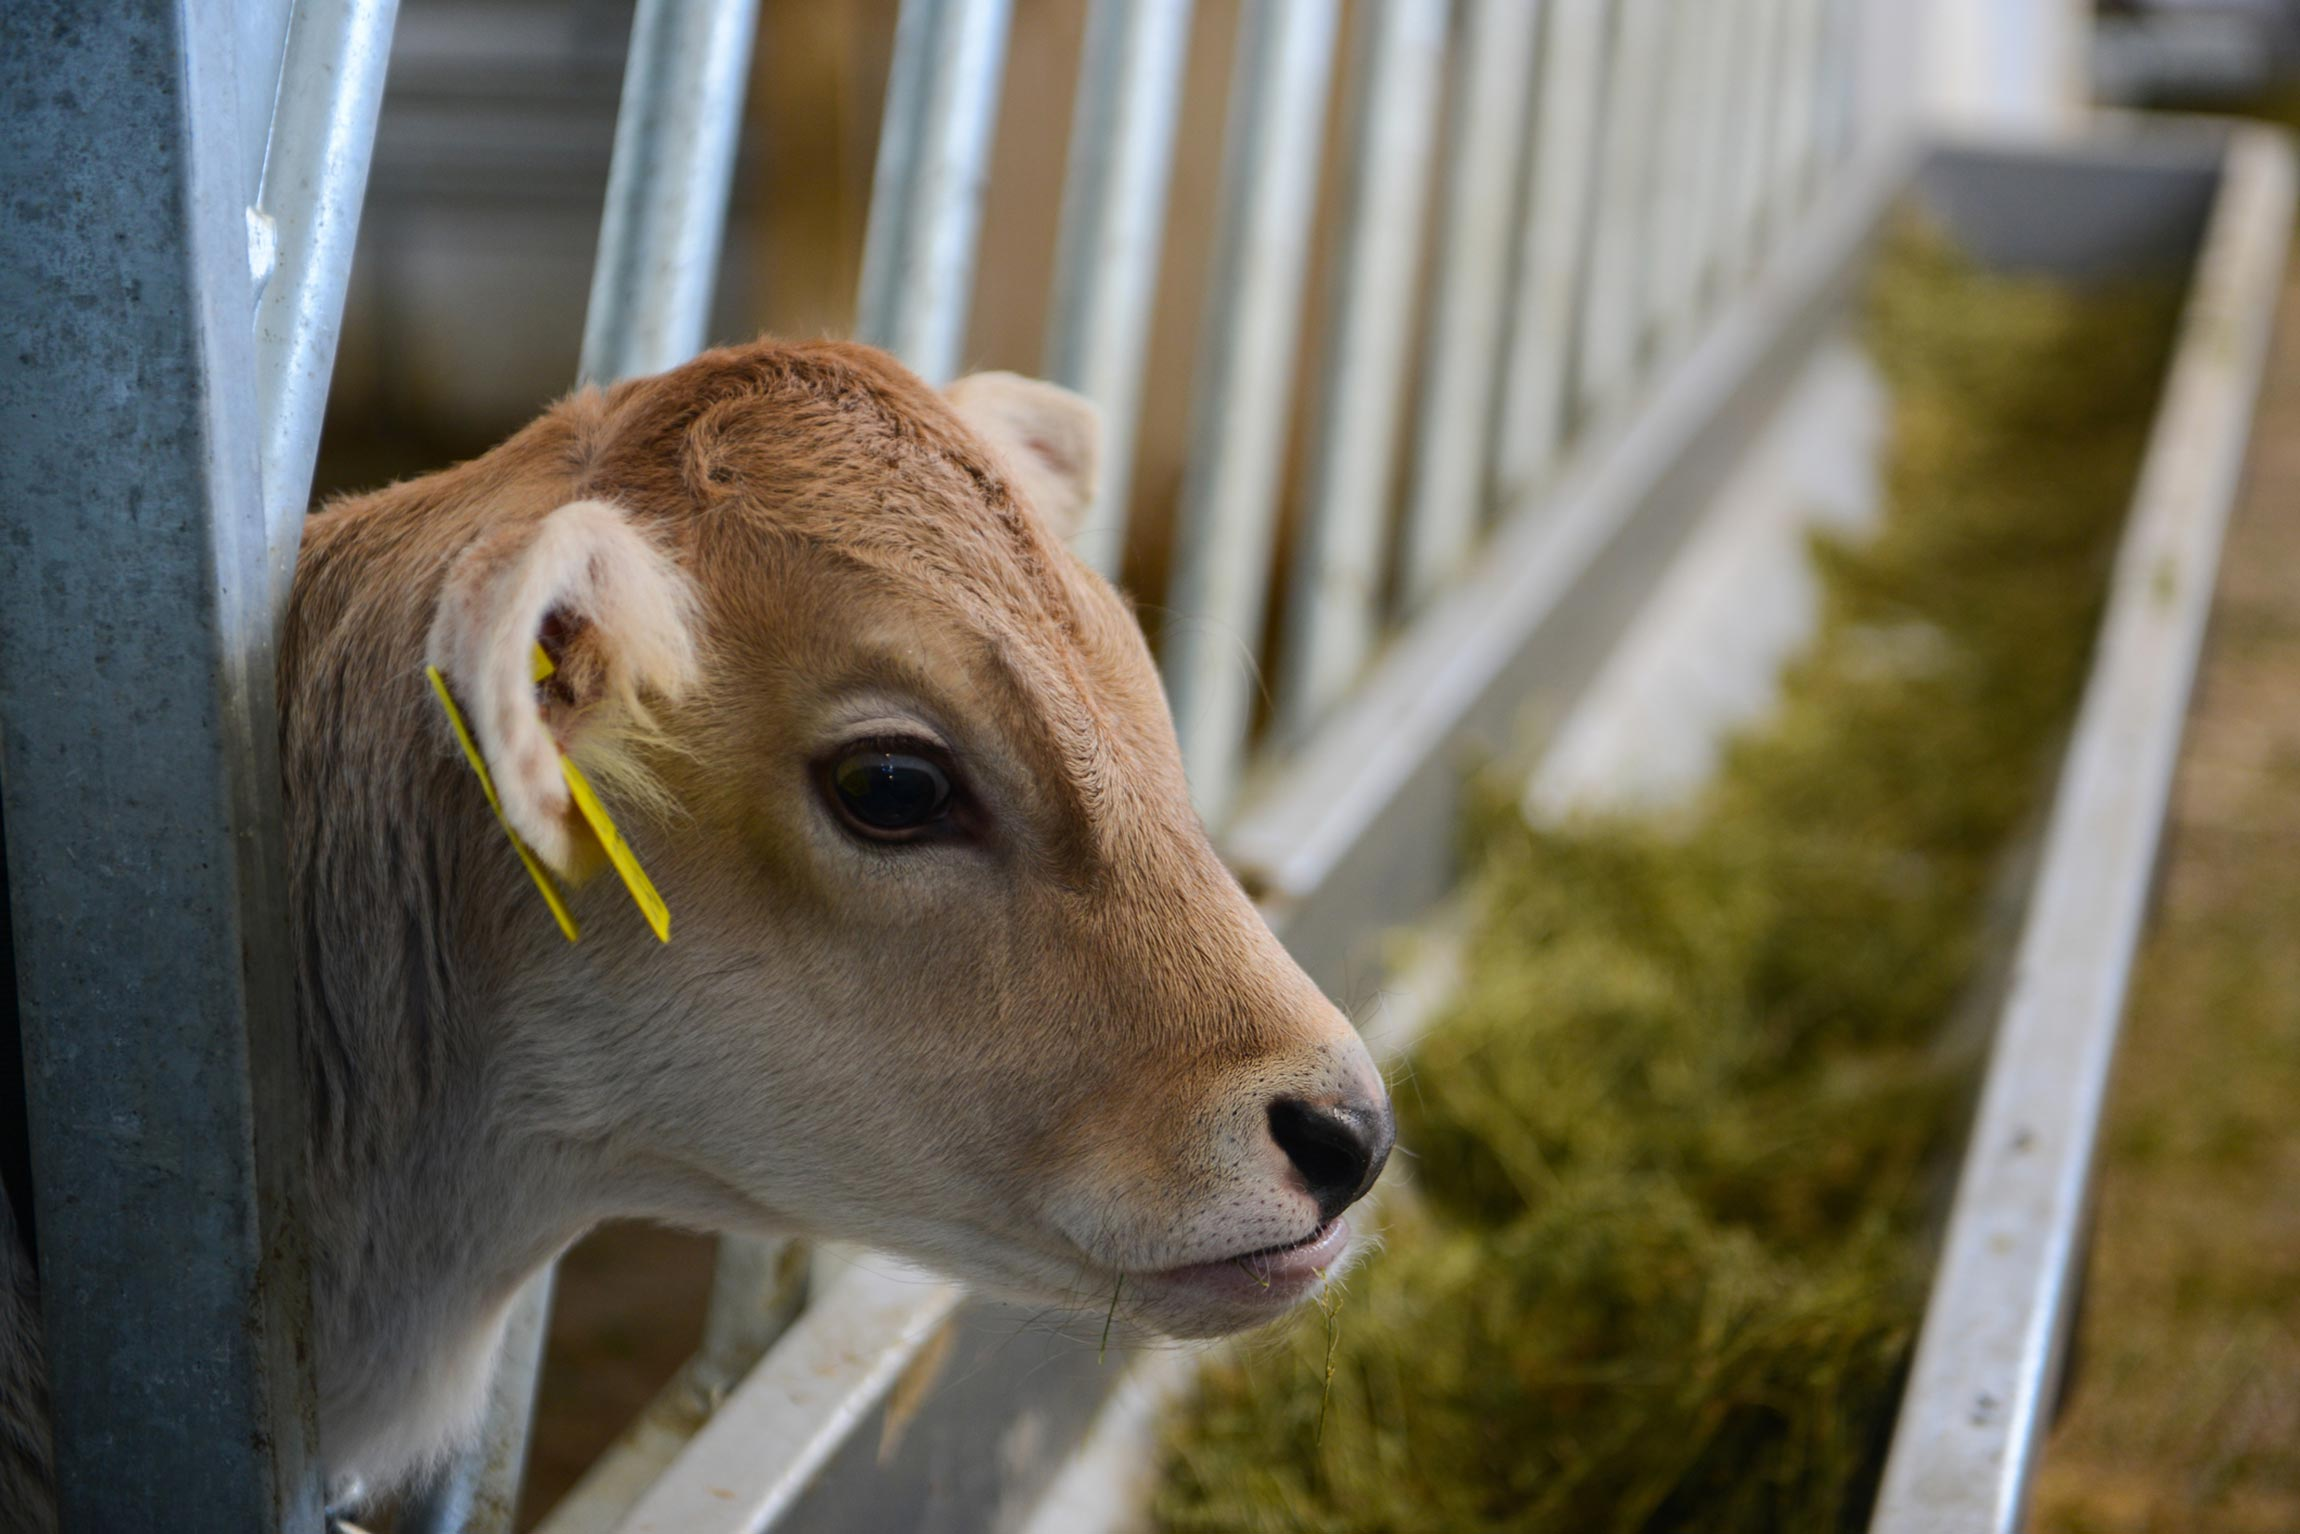 baby cow eating food from a factory farm trough